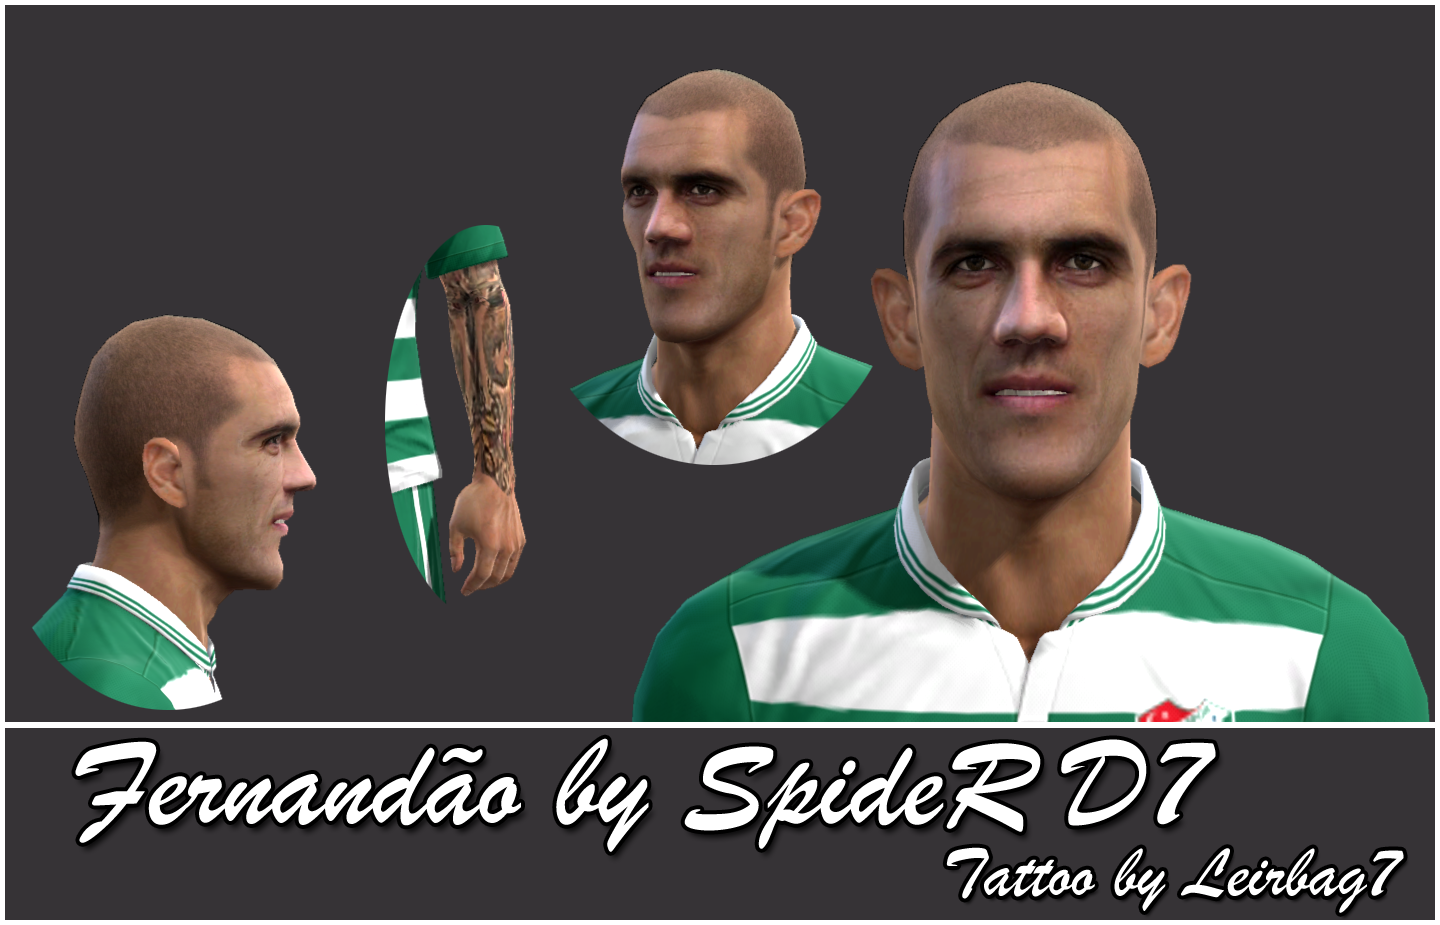 PES 2013 Fernandão (Bursaspor) Face by SpideR D7